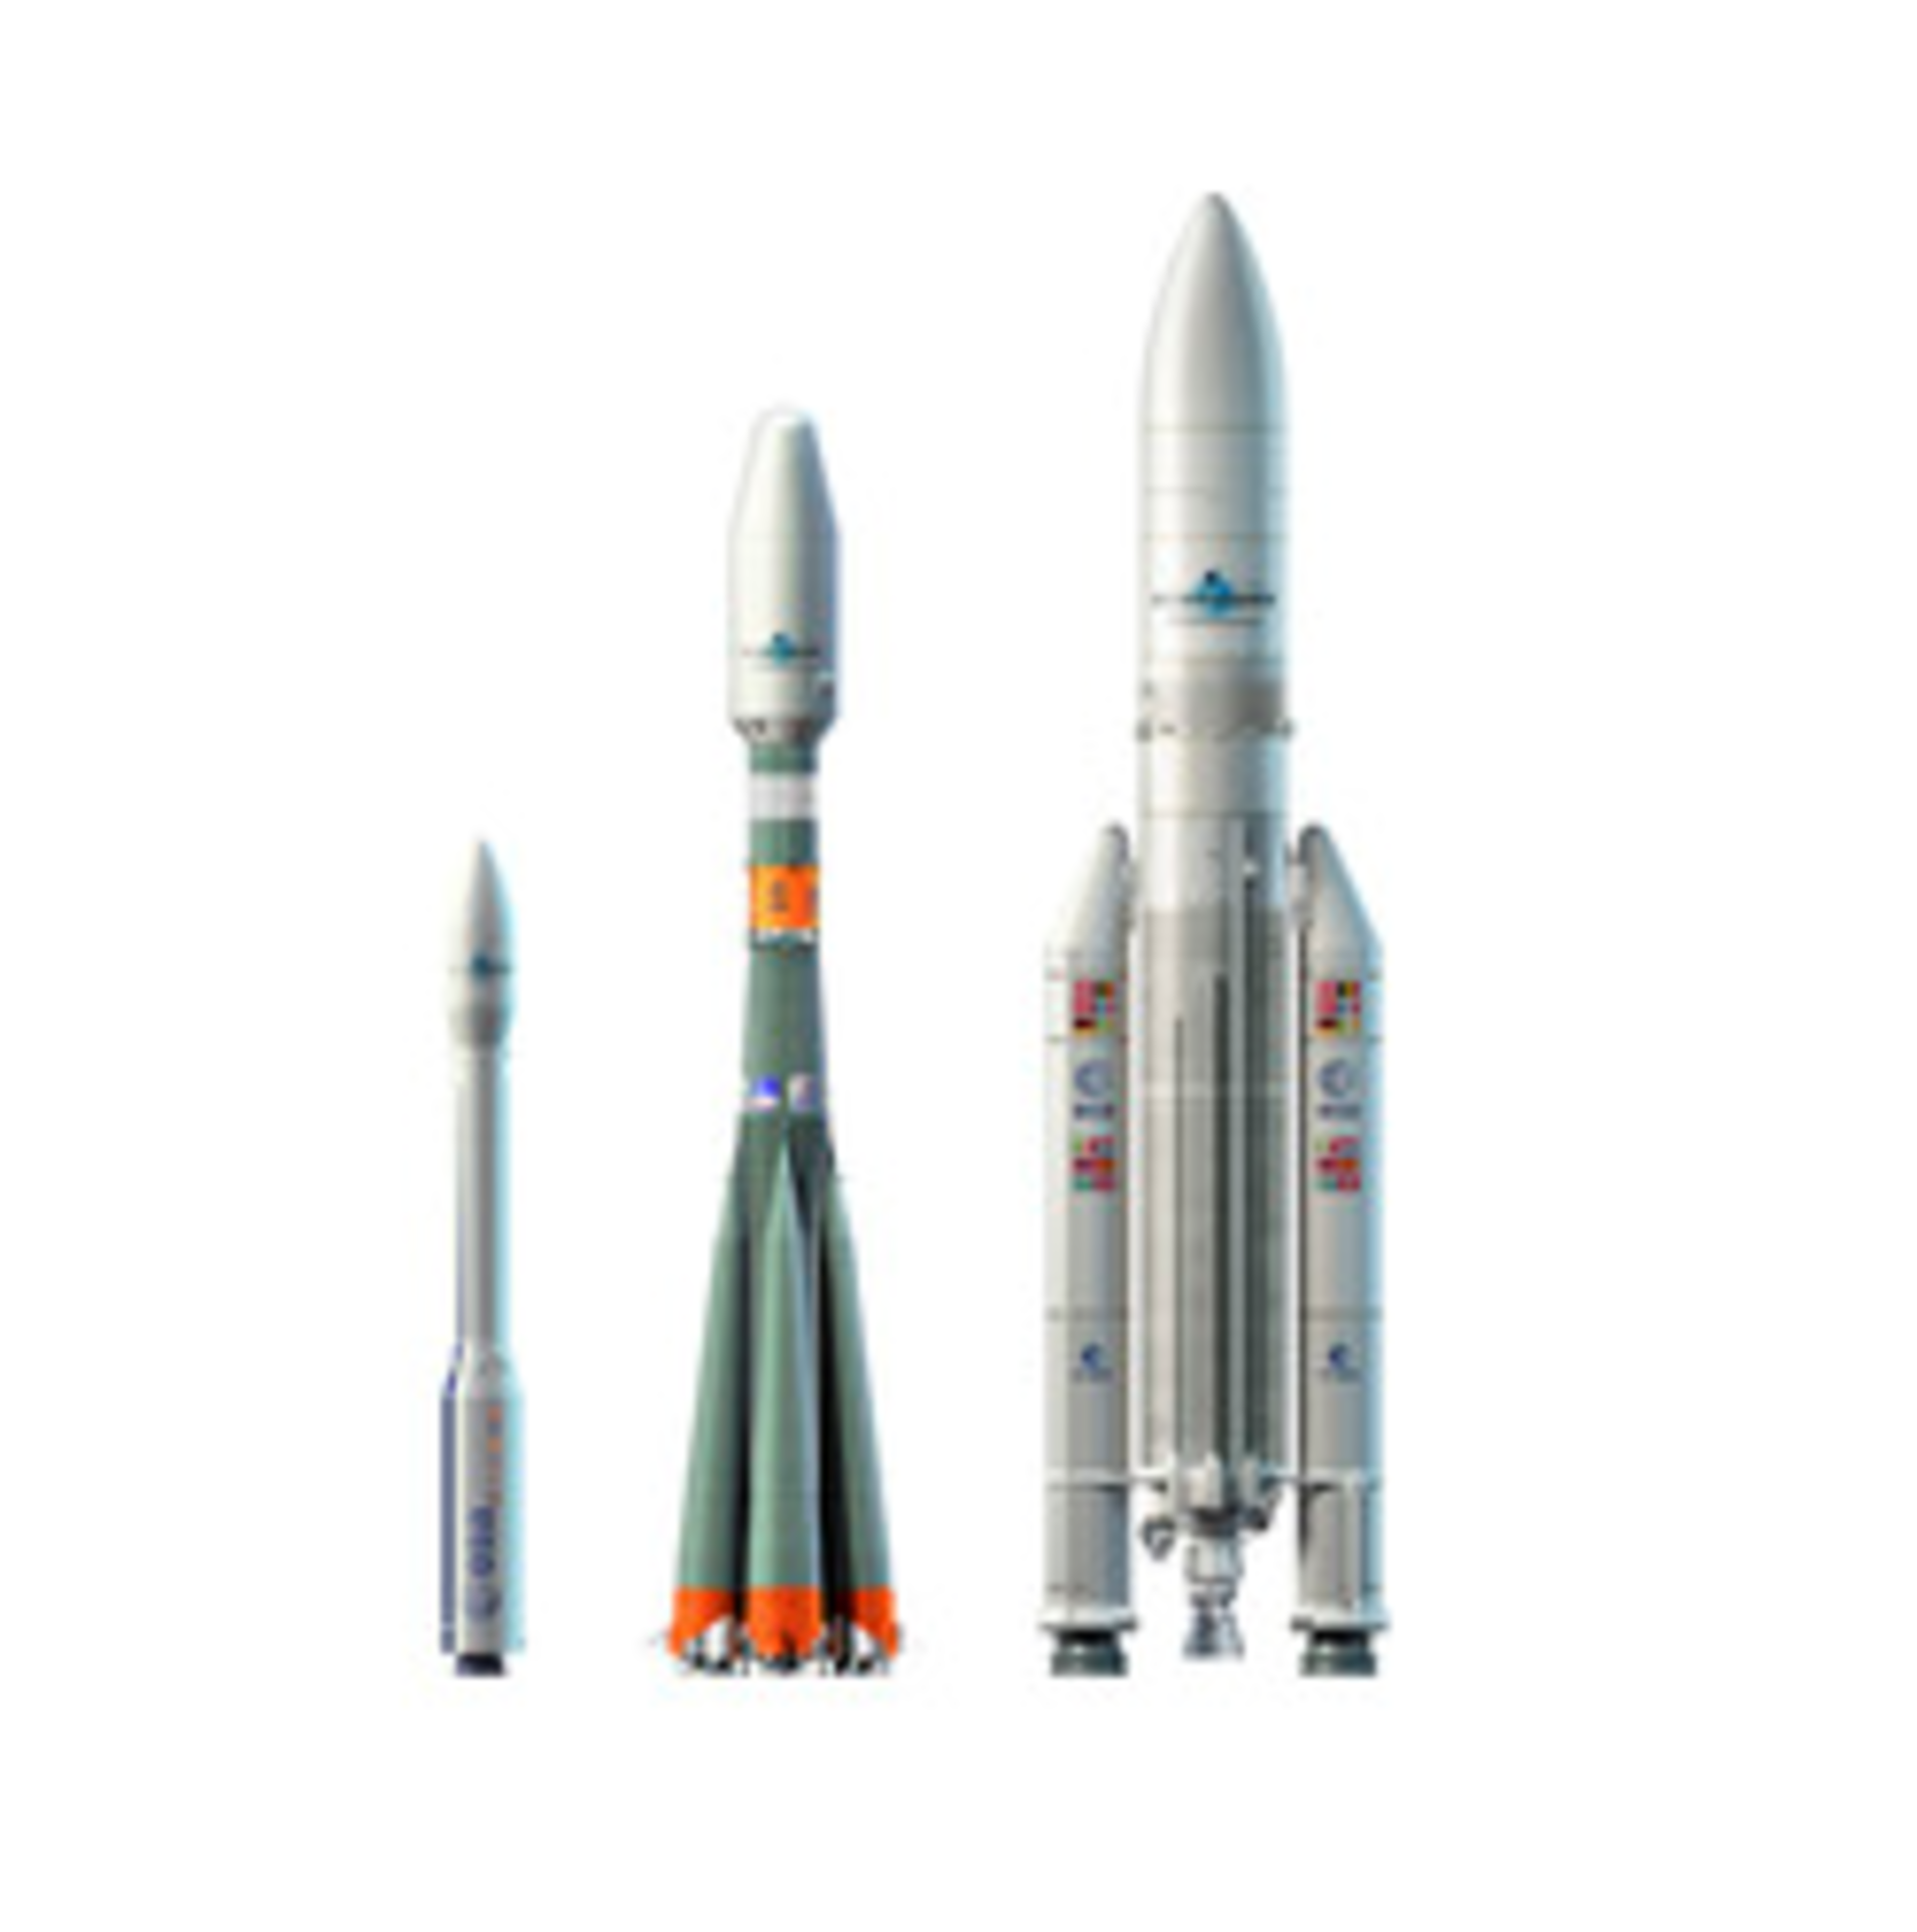 Launchers at Europe's Spaceport